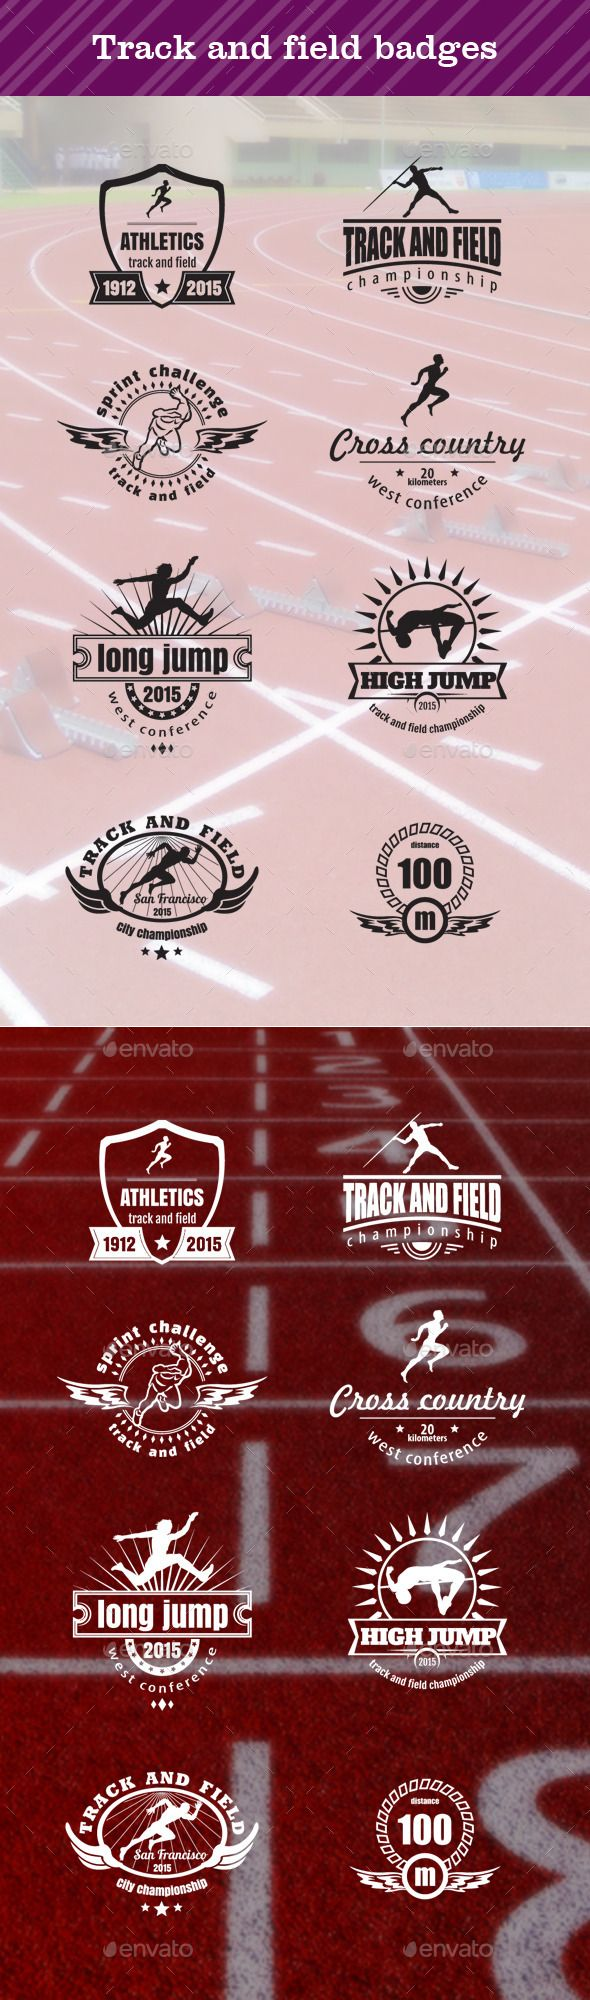 Track and Field Badges sport emblems sport logos petition